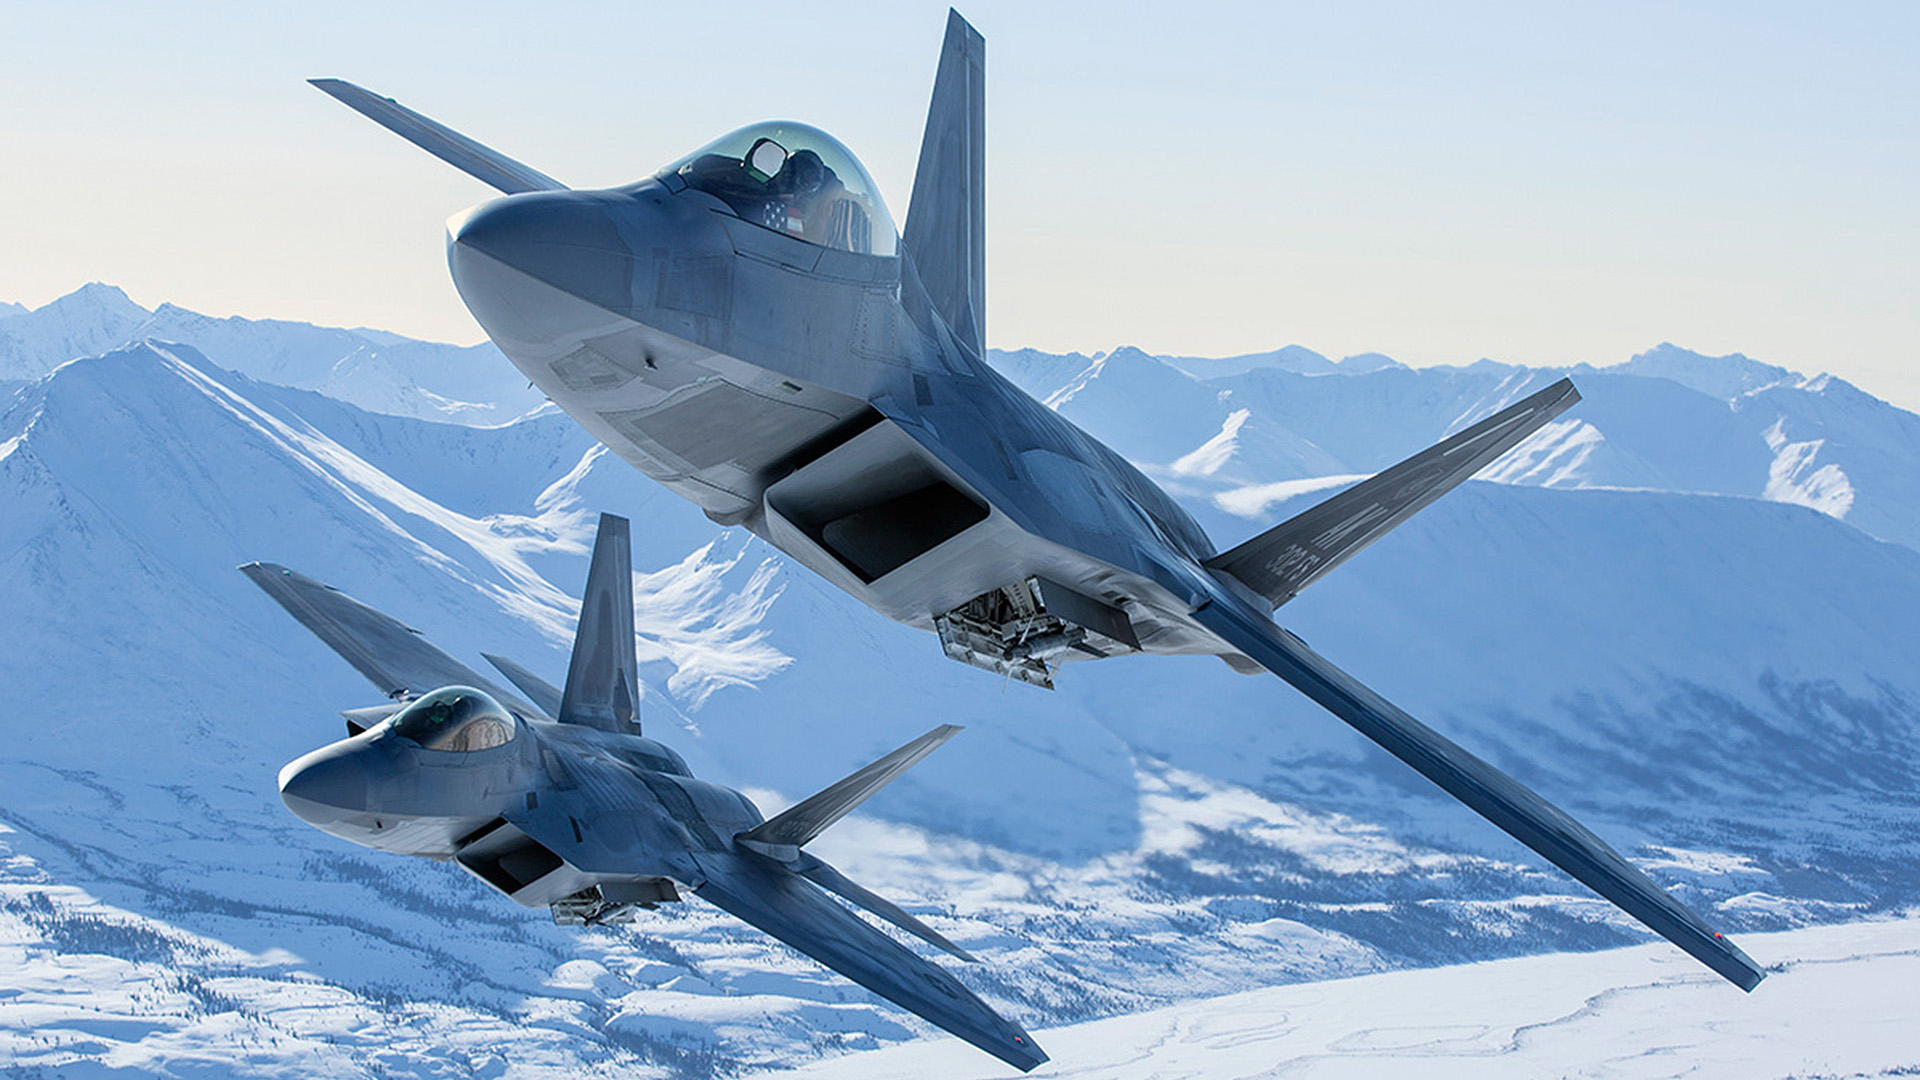 just allow the f 22 to be exported to japan already